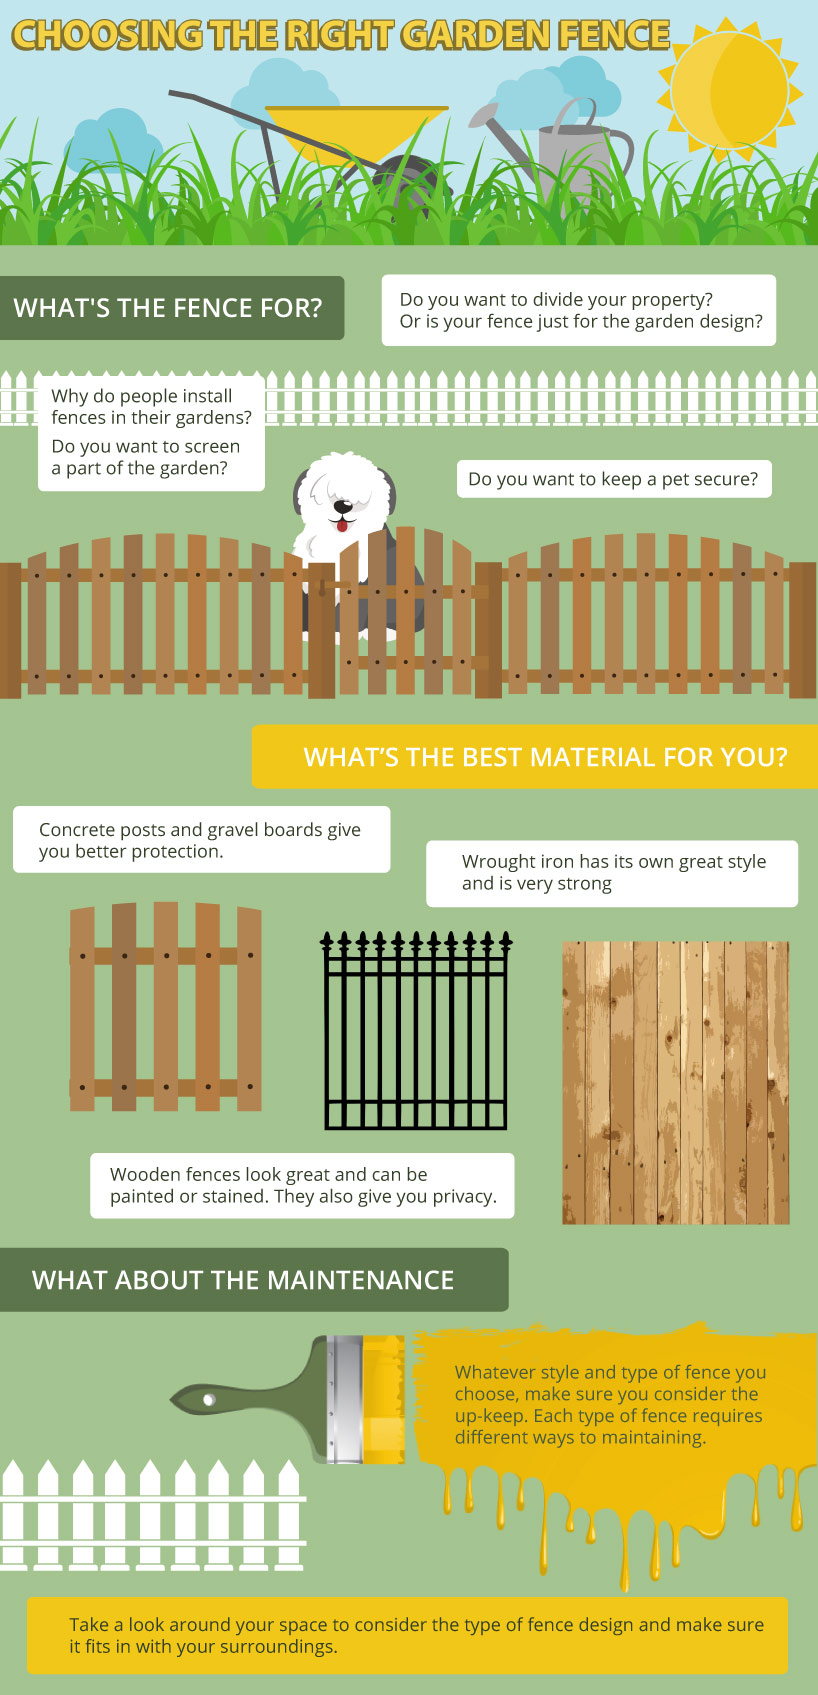 Choosing the right garden fence [Infographic]